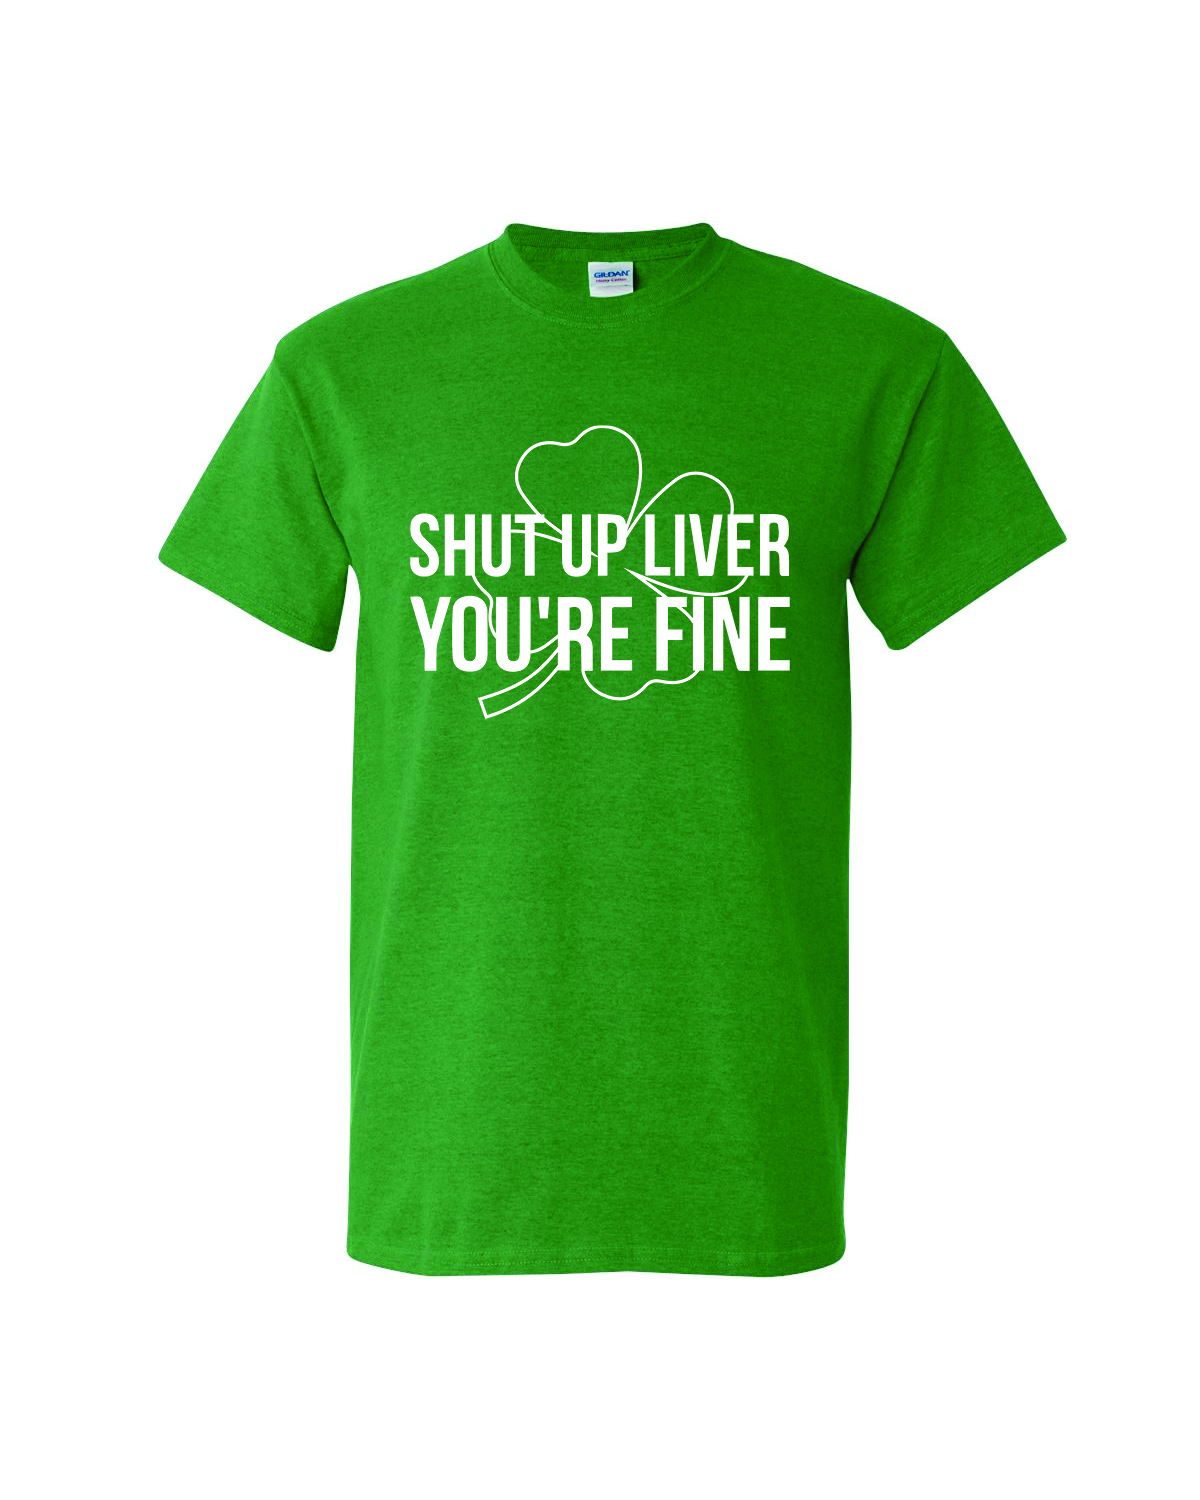 St. Patty's Day Short Sleeve Tee - Shut Up Liver